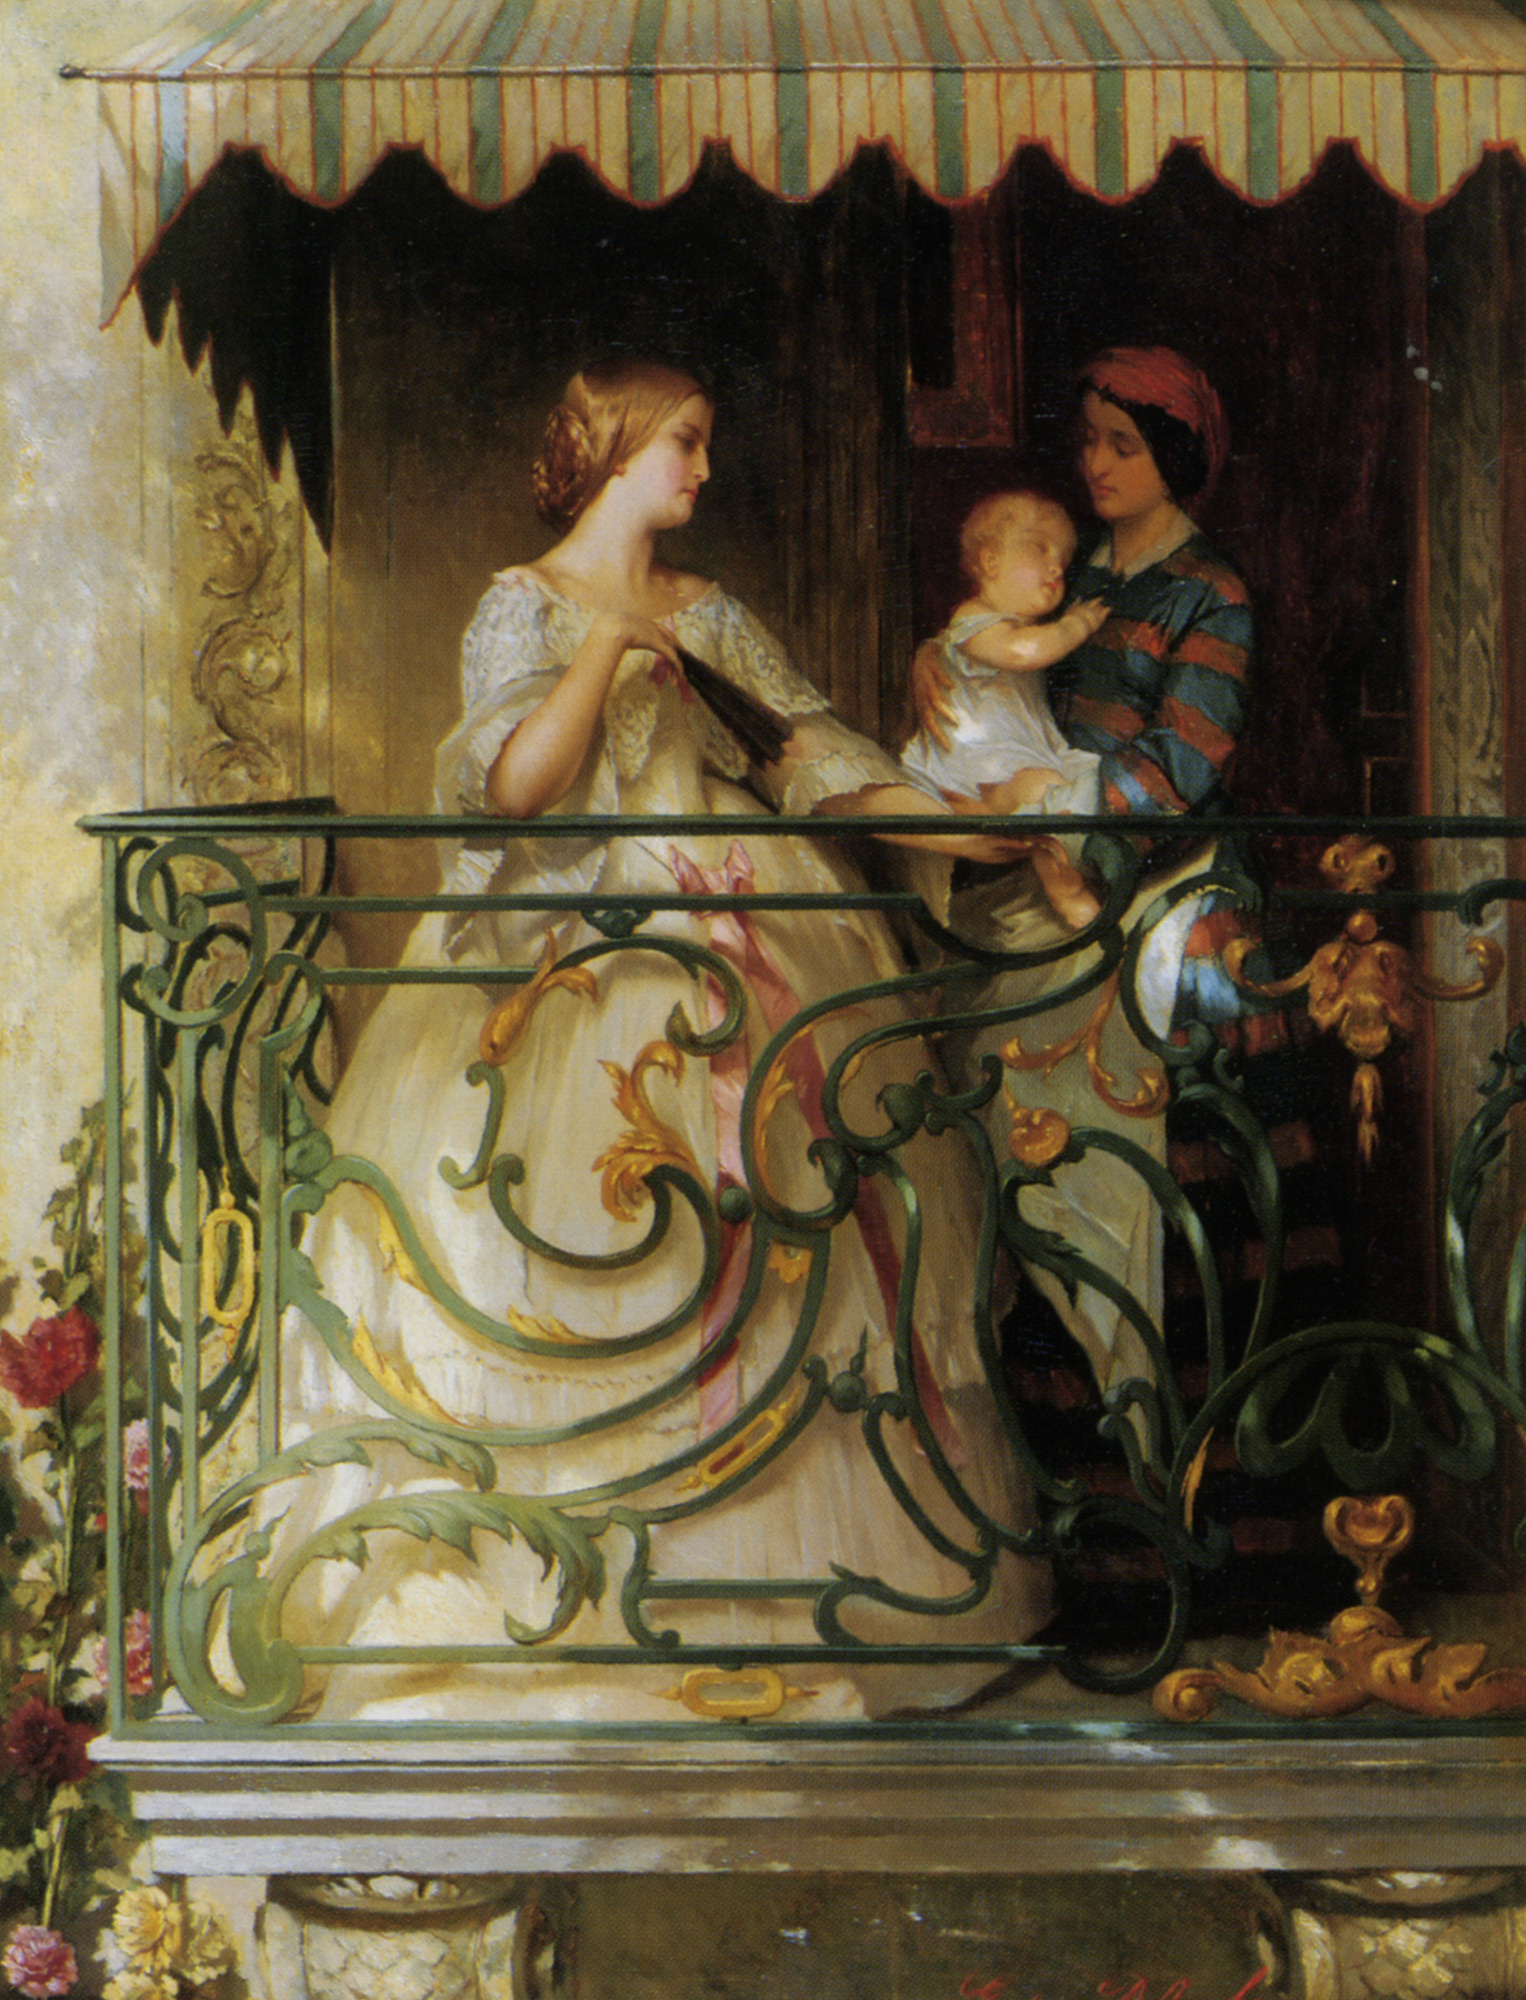 On The Balcony :: Gustave Leonhard de Jonghe - Woman and child in painting and art ôîòî